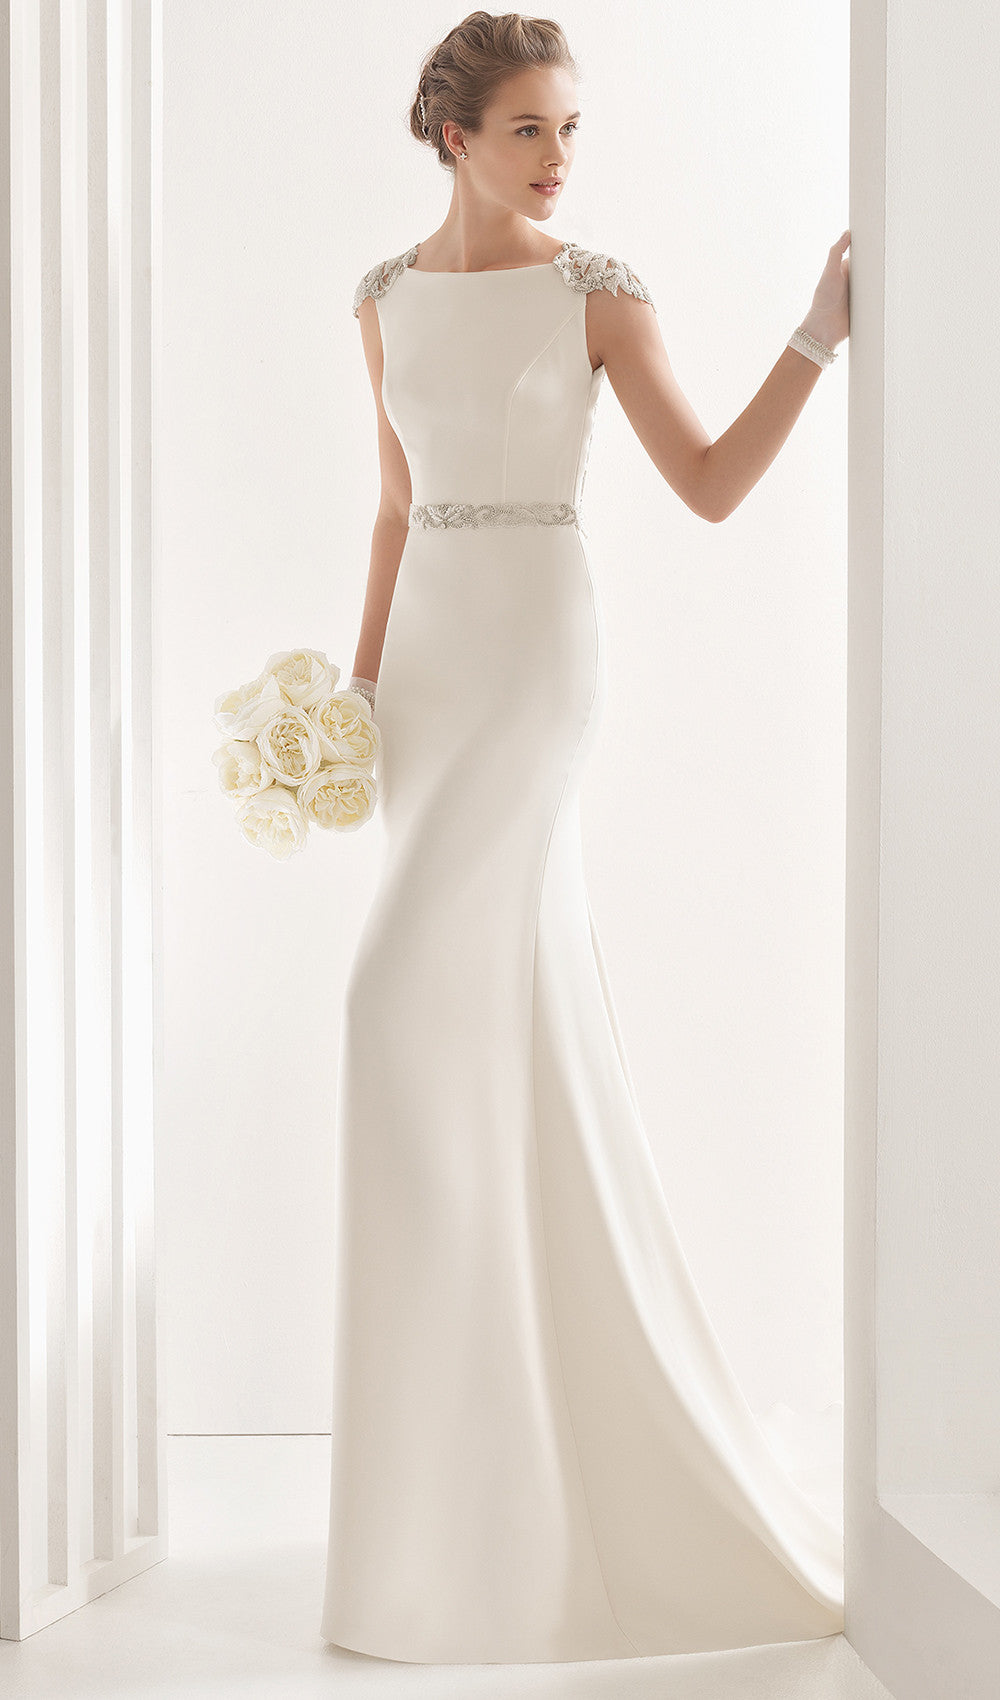 Rosa Clara - STYLE NAIRA | Schaffer's Bridal in Des Moines, Iowa and Scottsdale, Arizona.